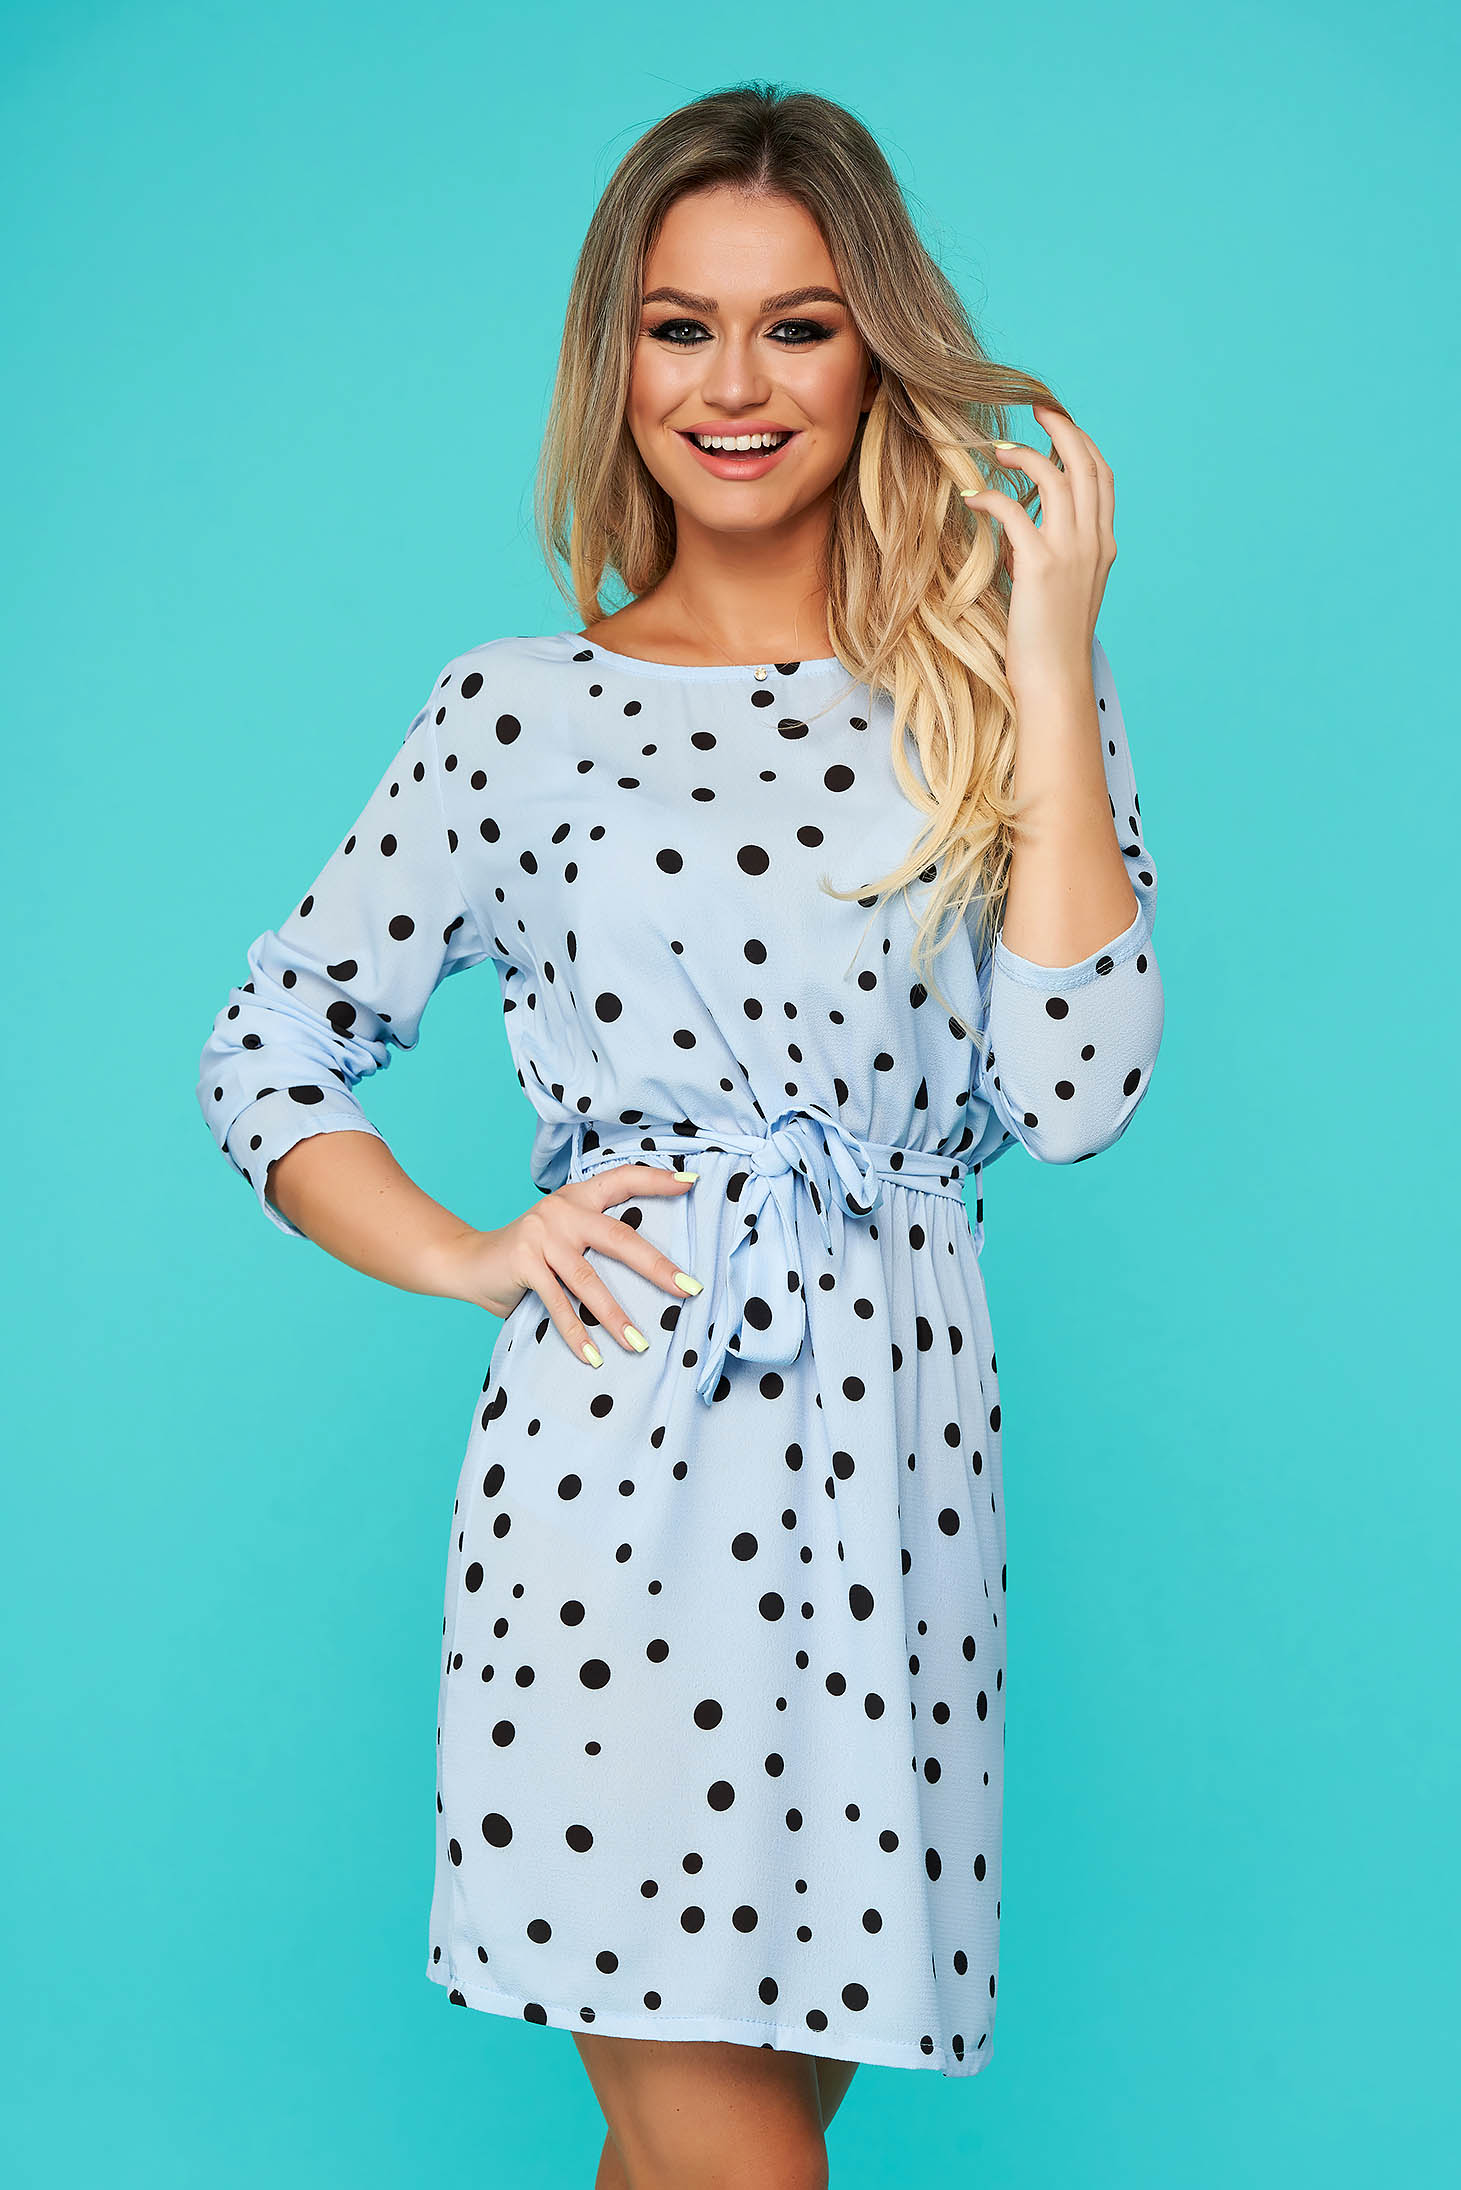 Lightblue dress daily cloche with elastic waist accessorized with tied waistband thin fabric with dots print